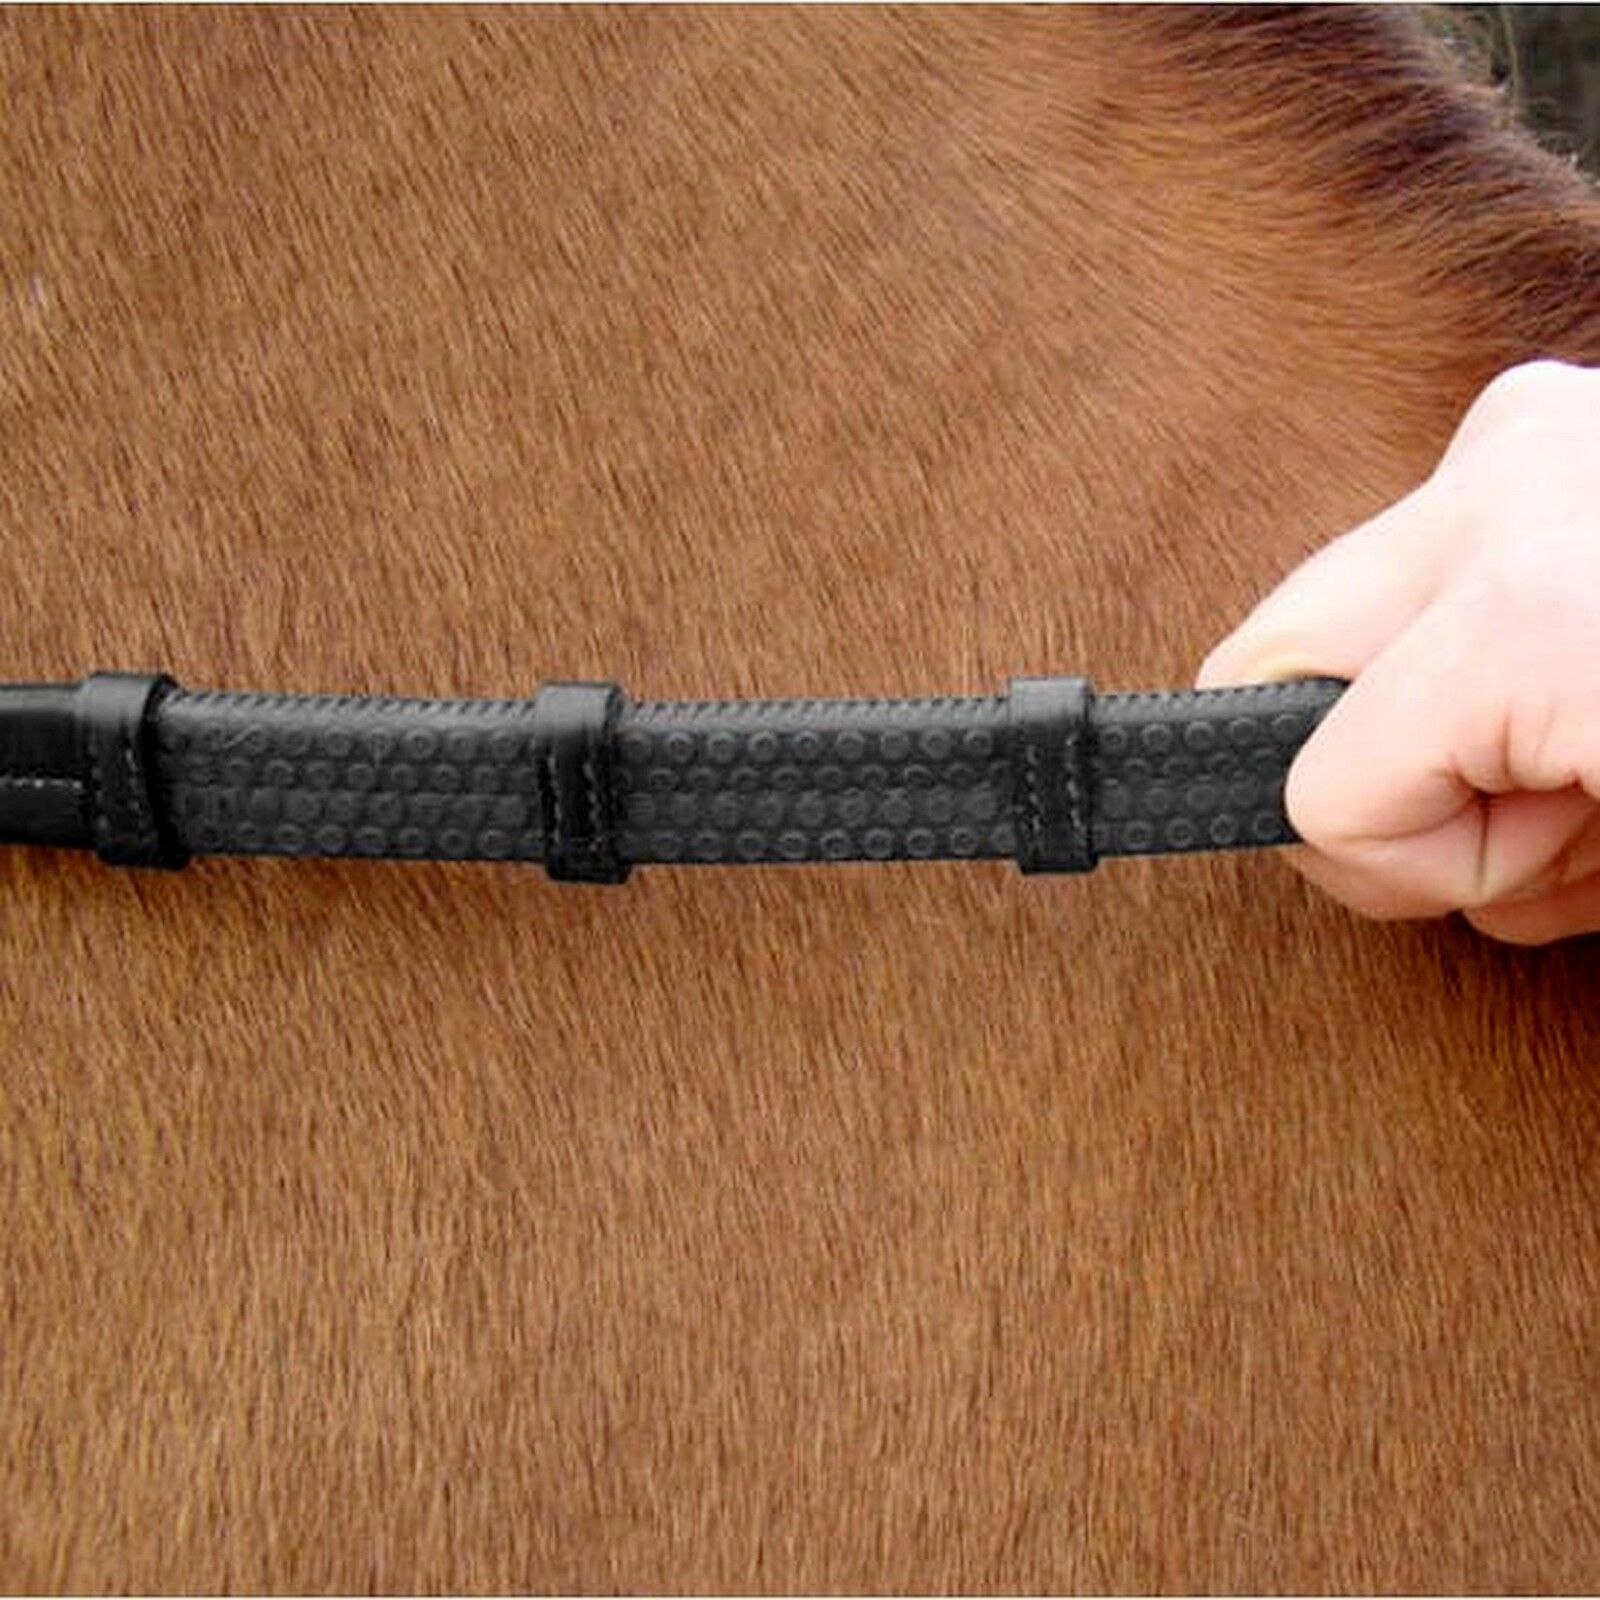 Amerigo Vespucci Hand Reins Grip Rubber Reins Hand with Hook Studs FREE DELIVERY 5566c1